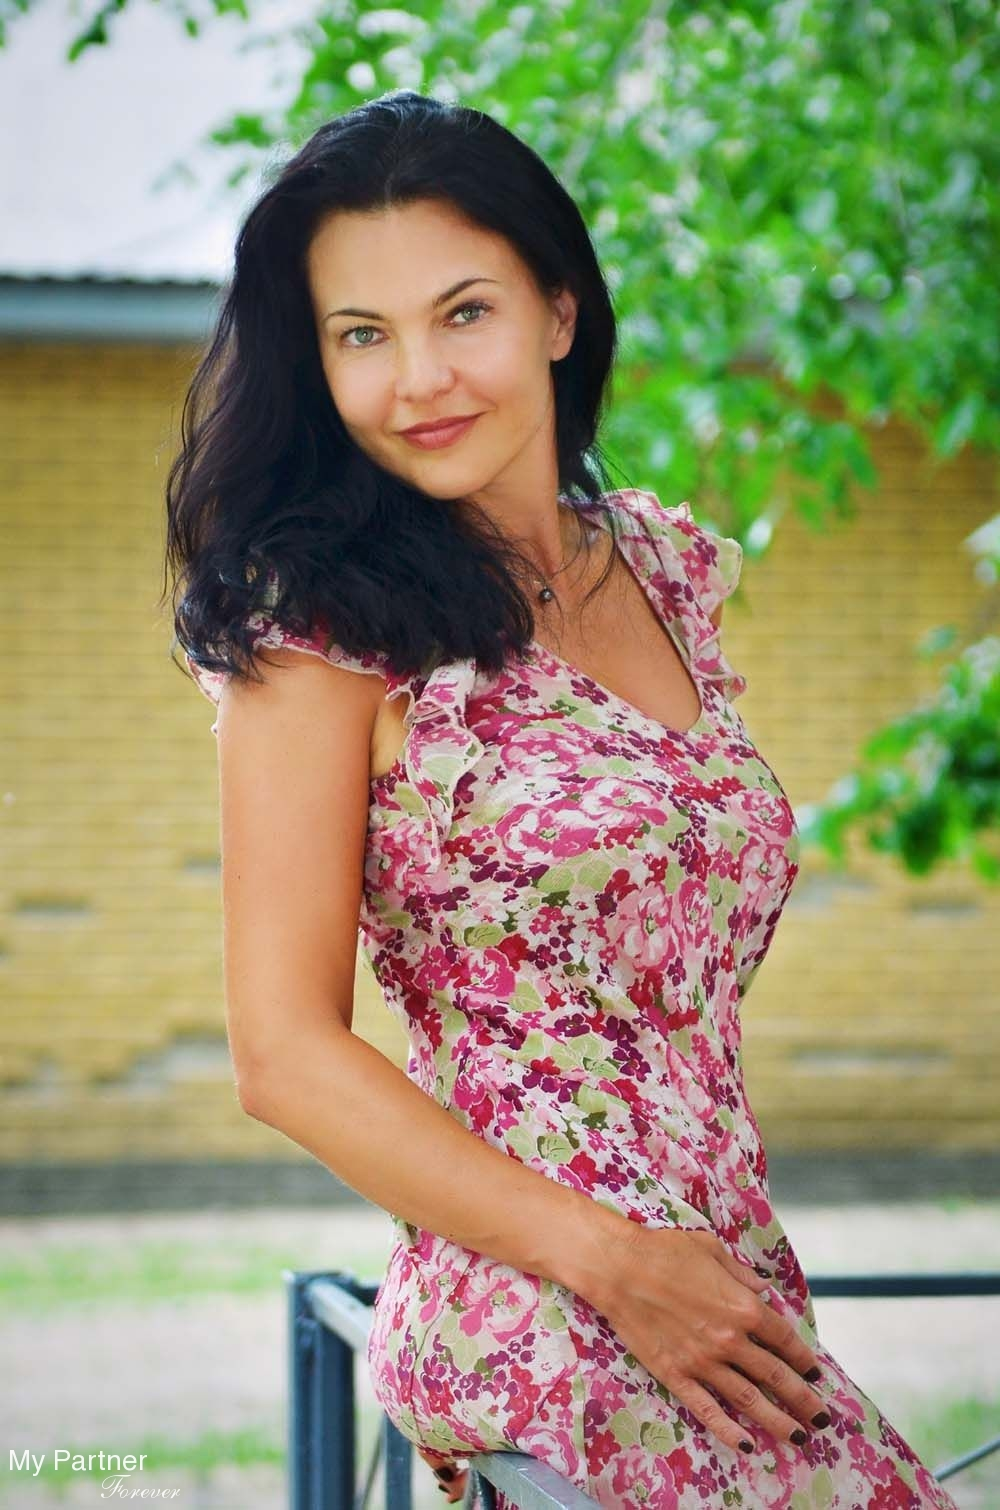 Datingsite to Meet Gorgeous Ukrainian Girl Olga from Kharkov, Ukraine